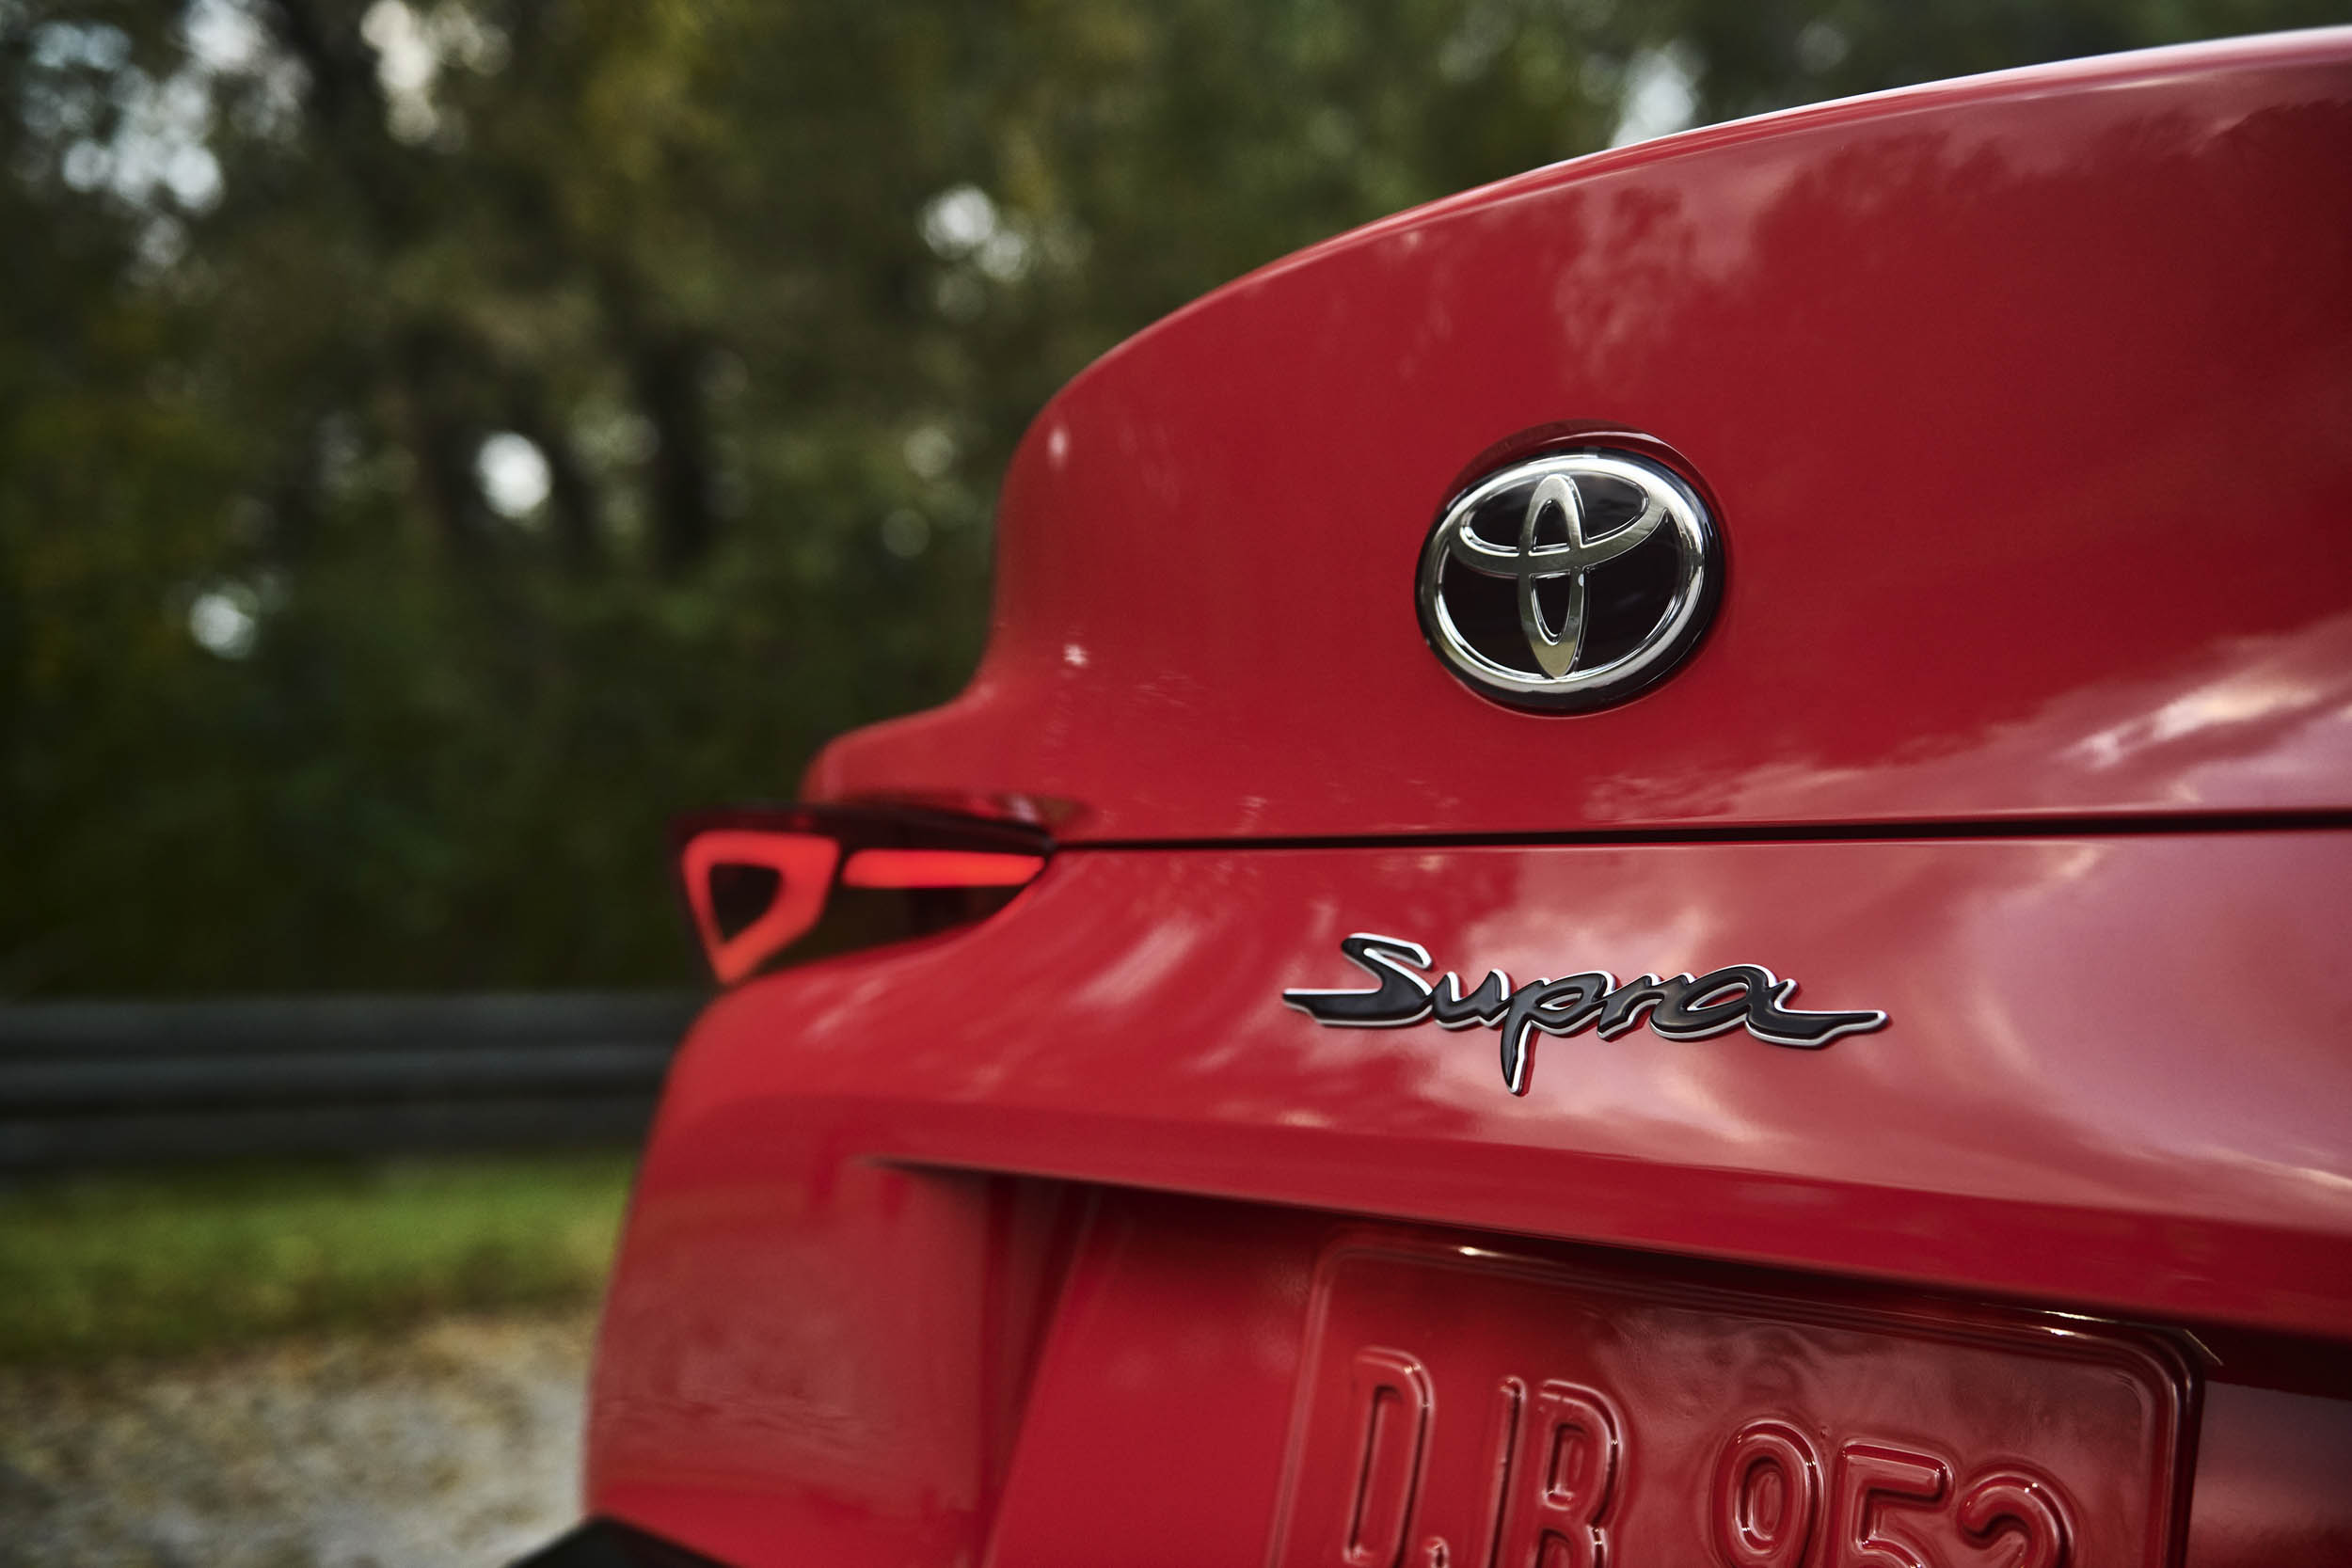 2020 Toyota Supra rear badge detail